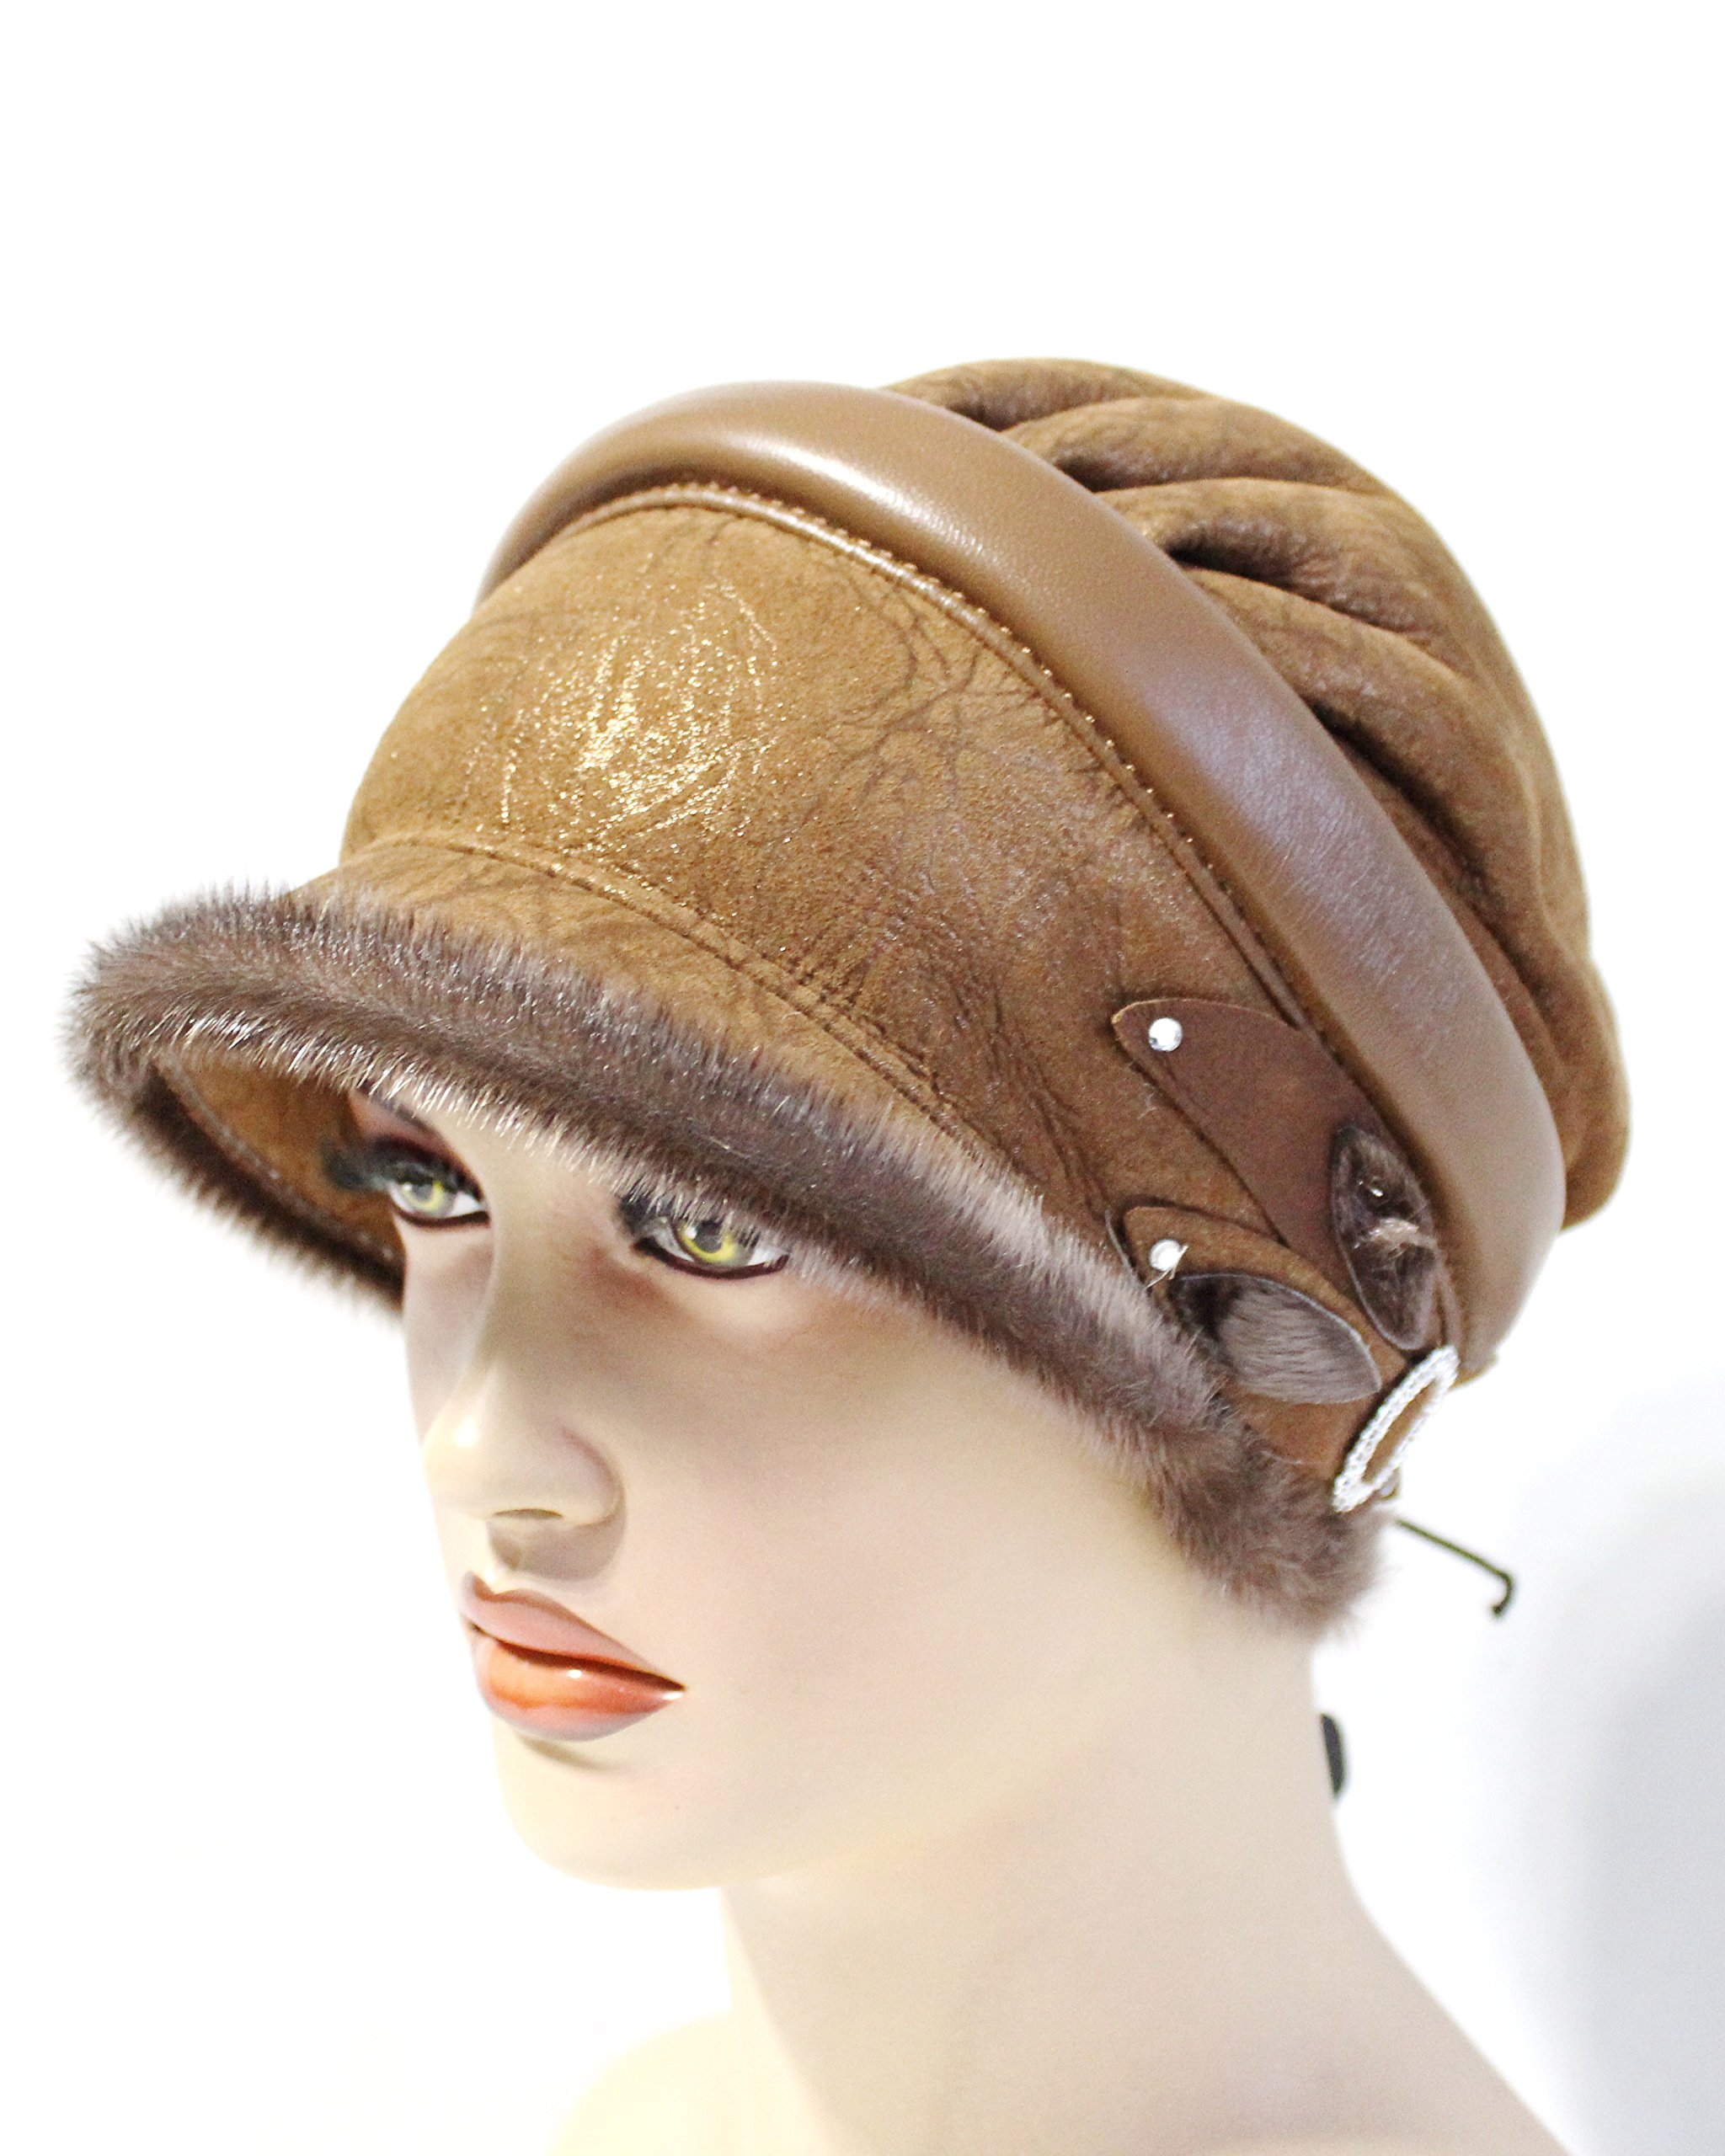 FurHatsfromUkraine Woman's hat Made of Sheepskin with Visor Elena is Light Brown.